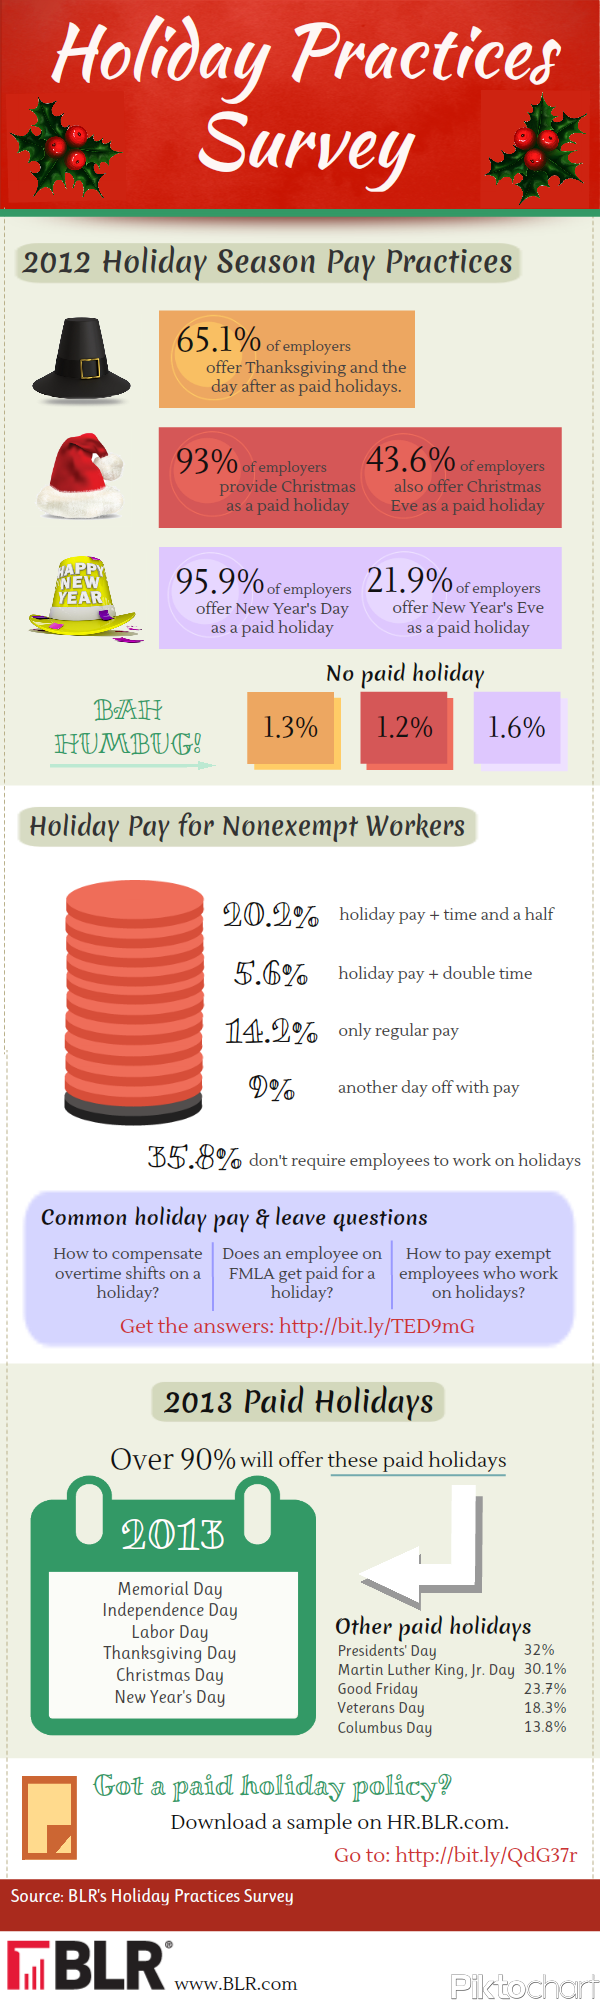 Holiday Practices Survey Infographic